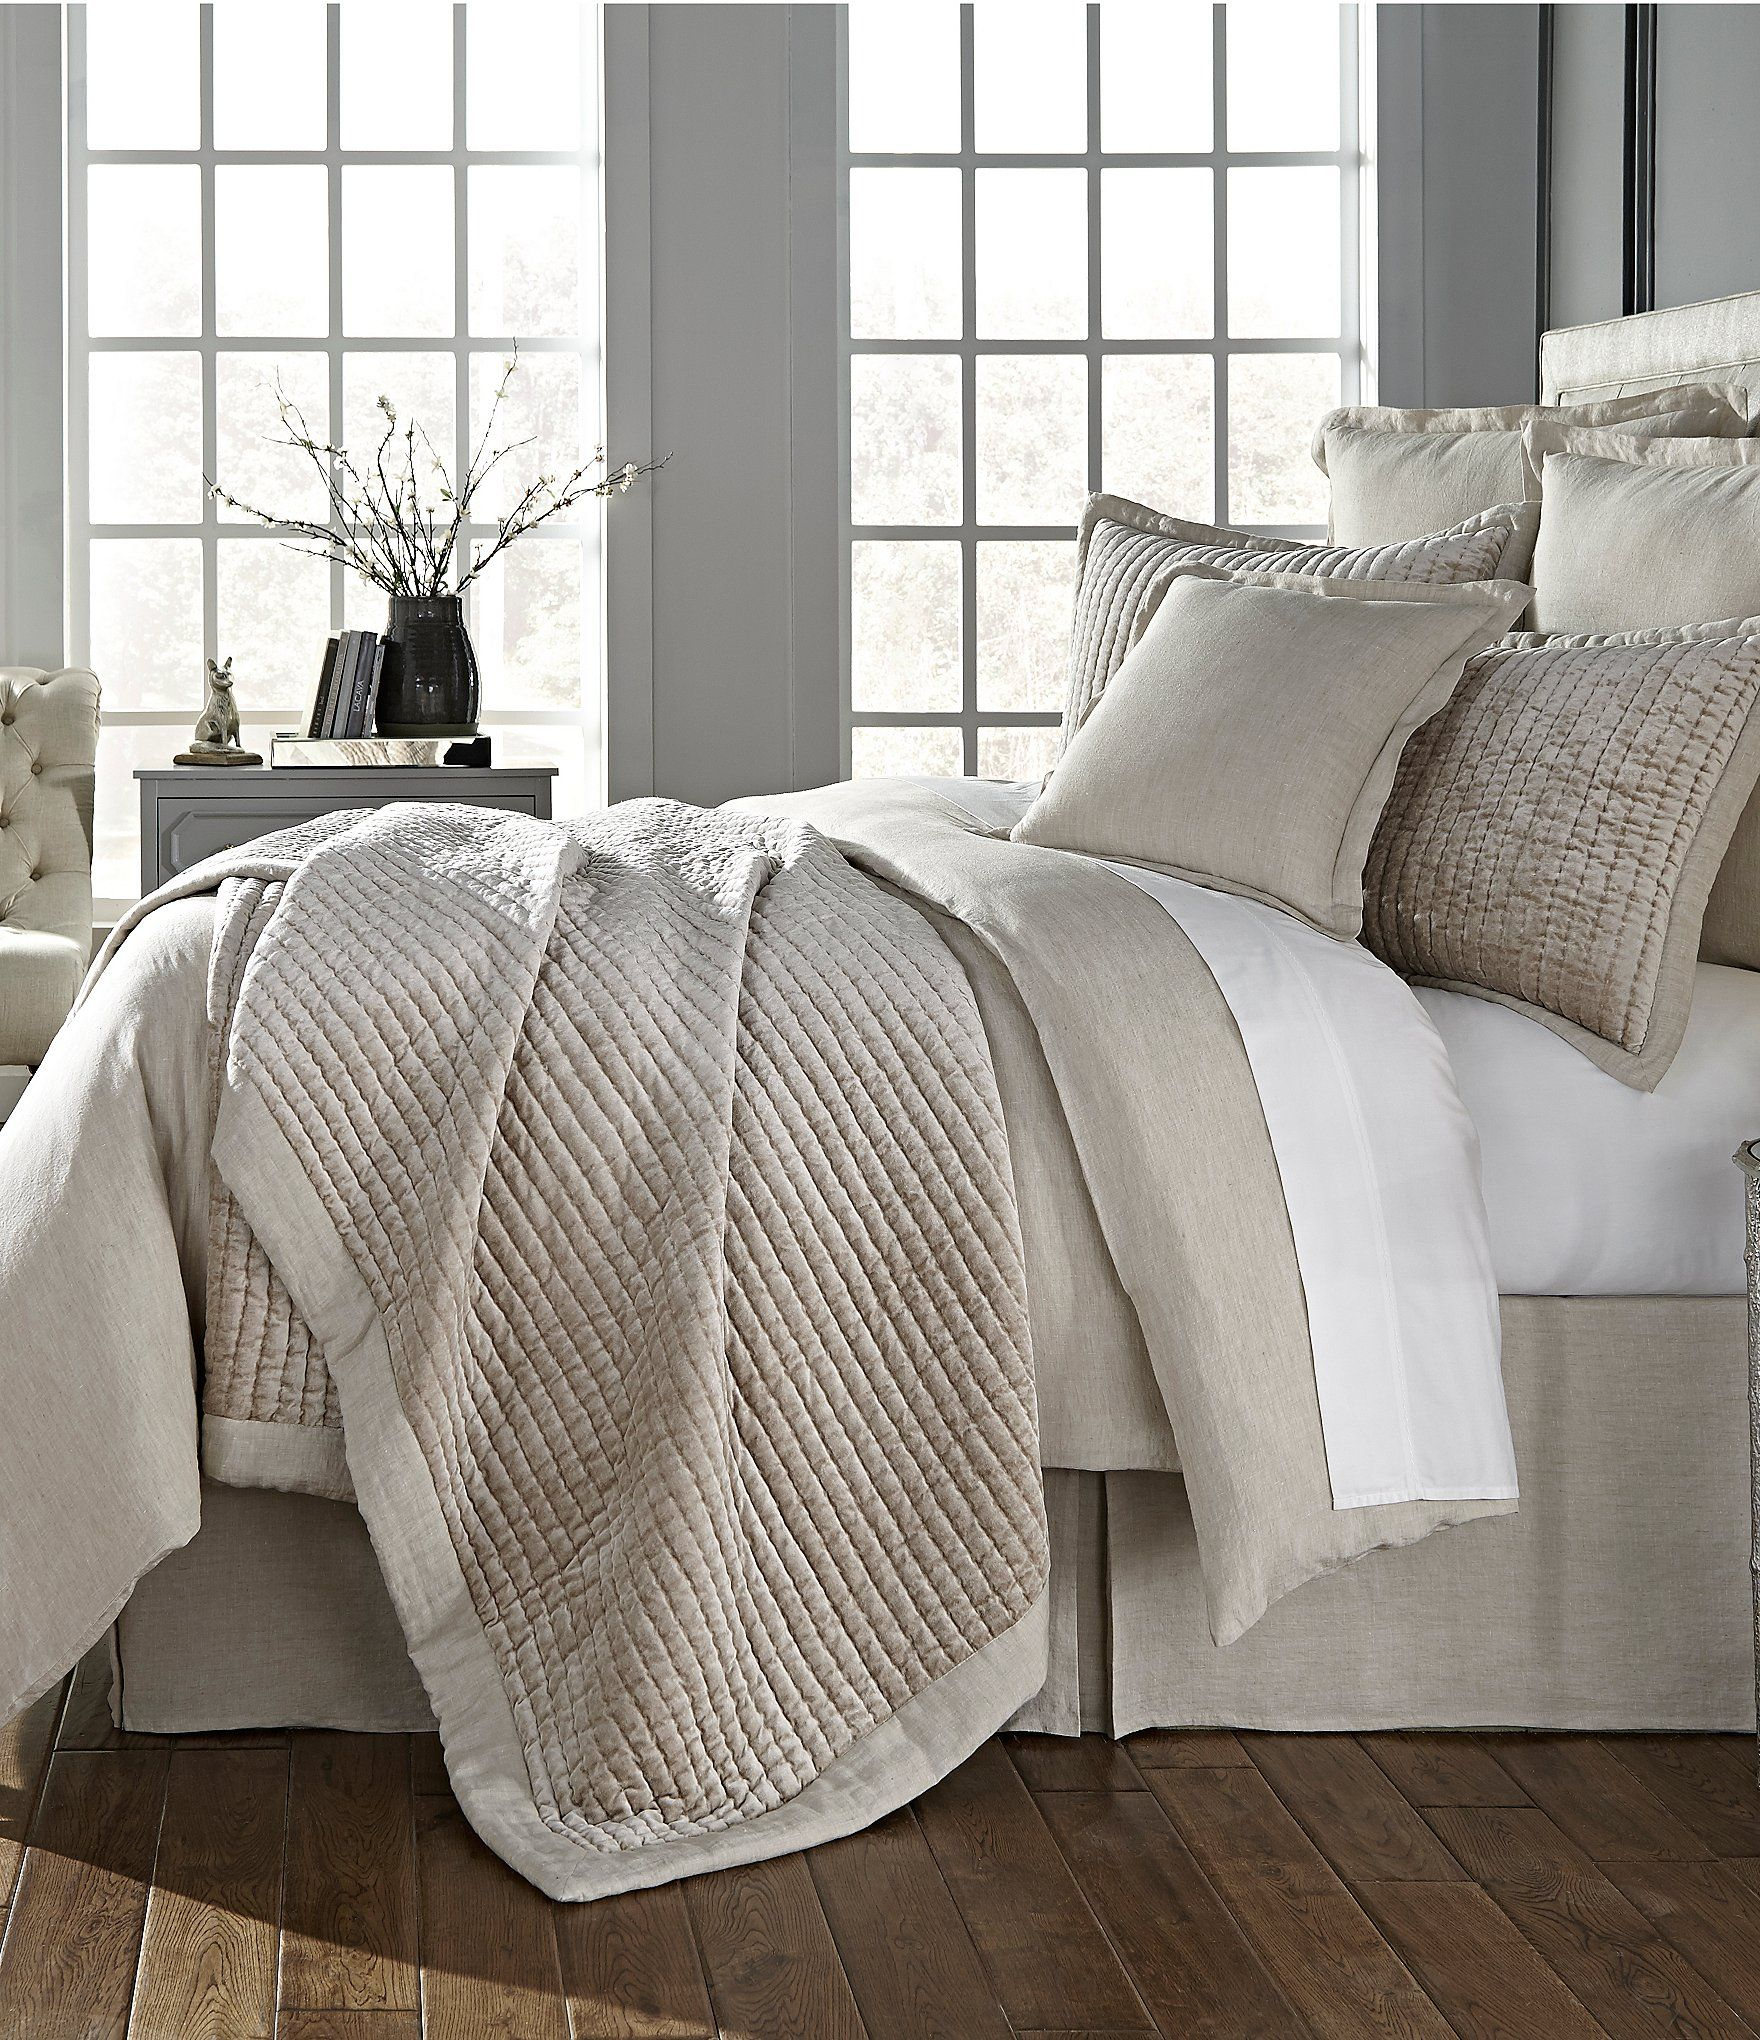 bed stylish home bedding has essentials idea southern every house woman in her things bedroom living bedrooms decor dillards